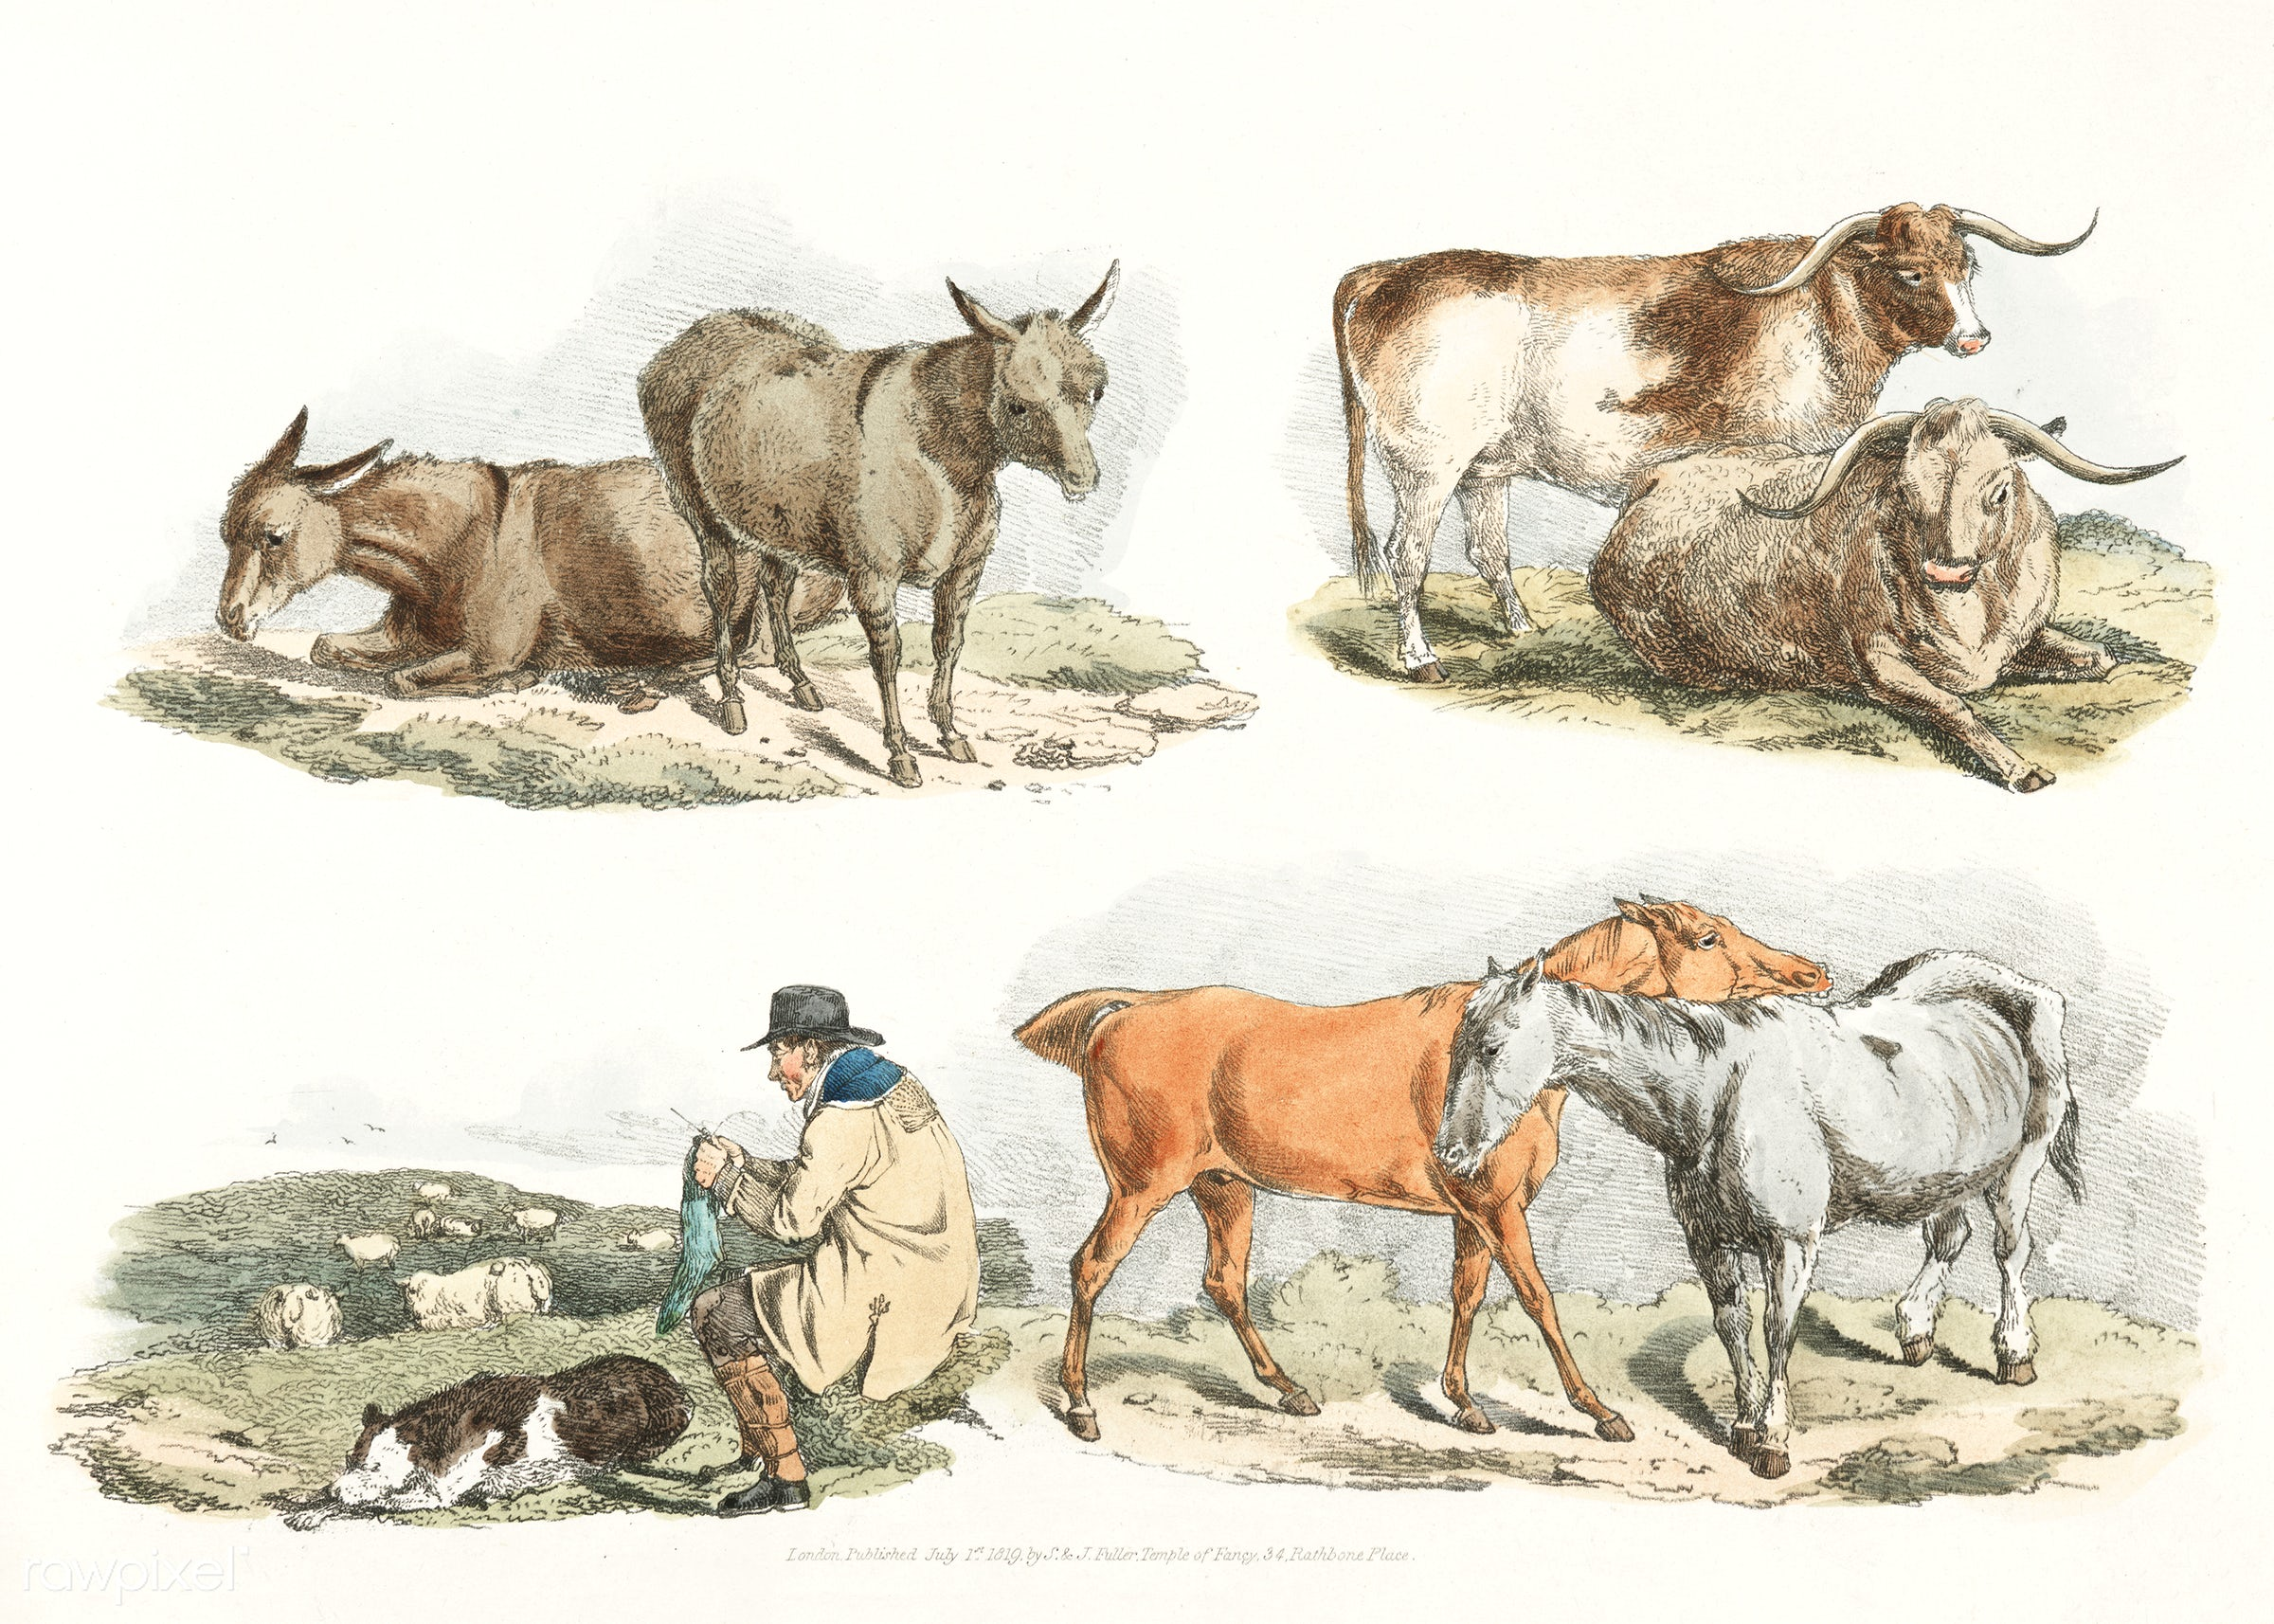 Illustration of knitting shepherd from Sporting Sketches (1817-1818) by Henry Alken (1784-1851). - animal, animals, antique...